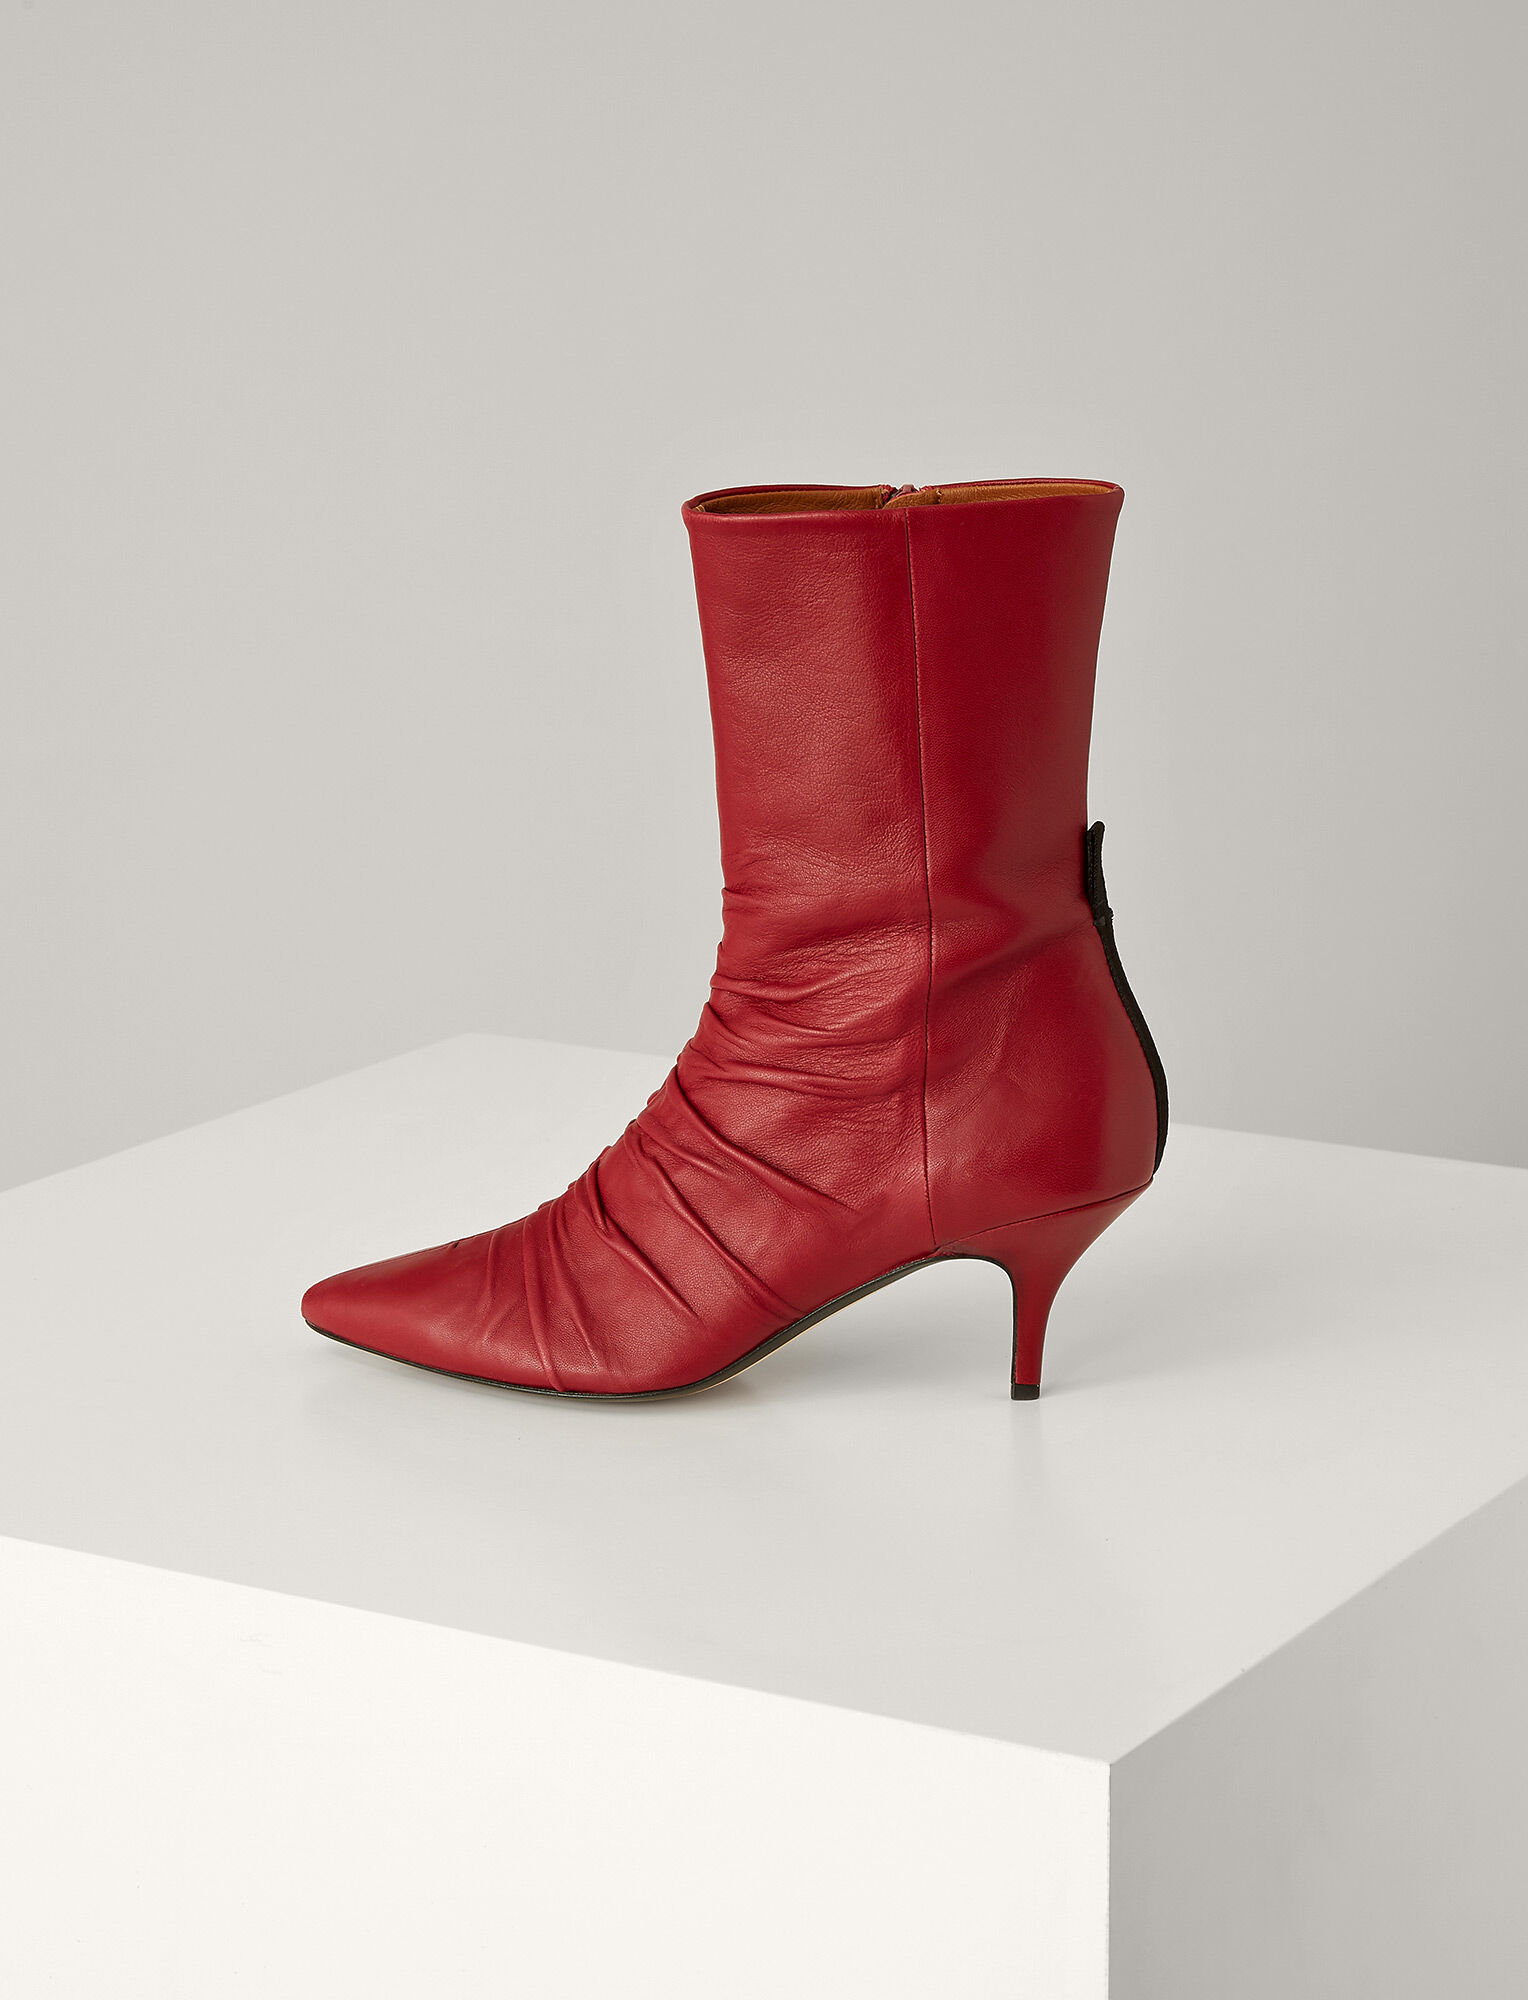 Joseph, Bottines Bianca en cuir, in GARNET